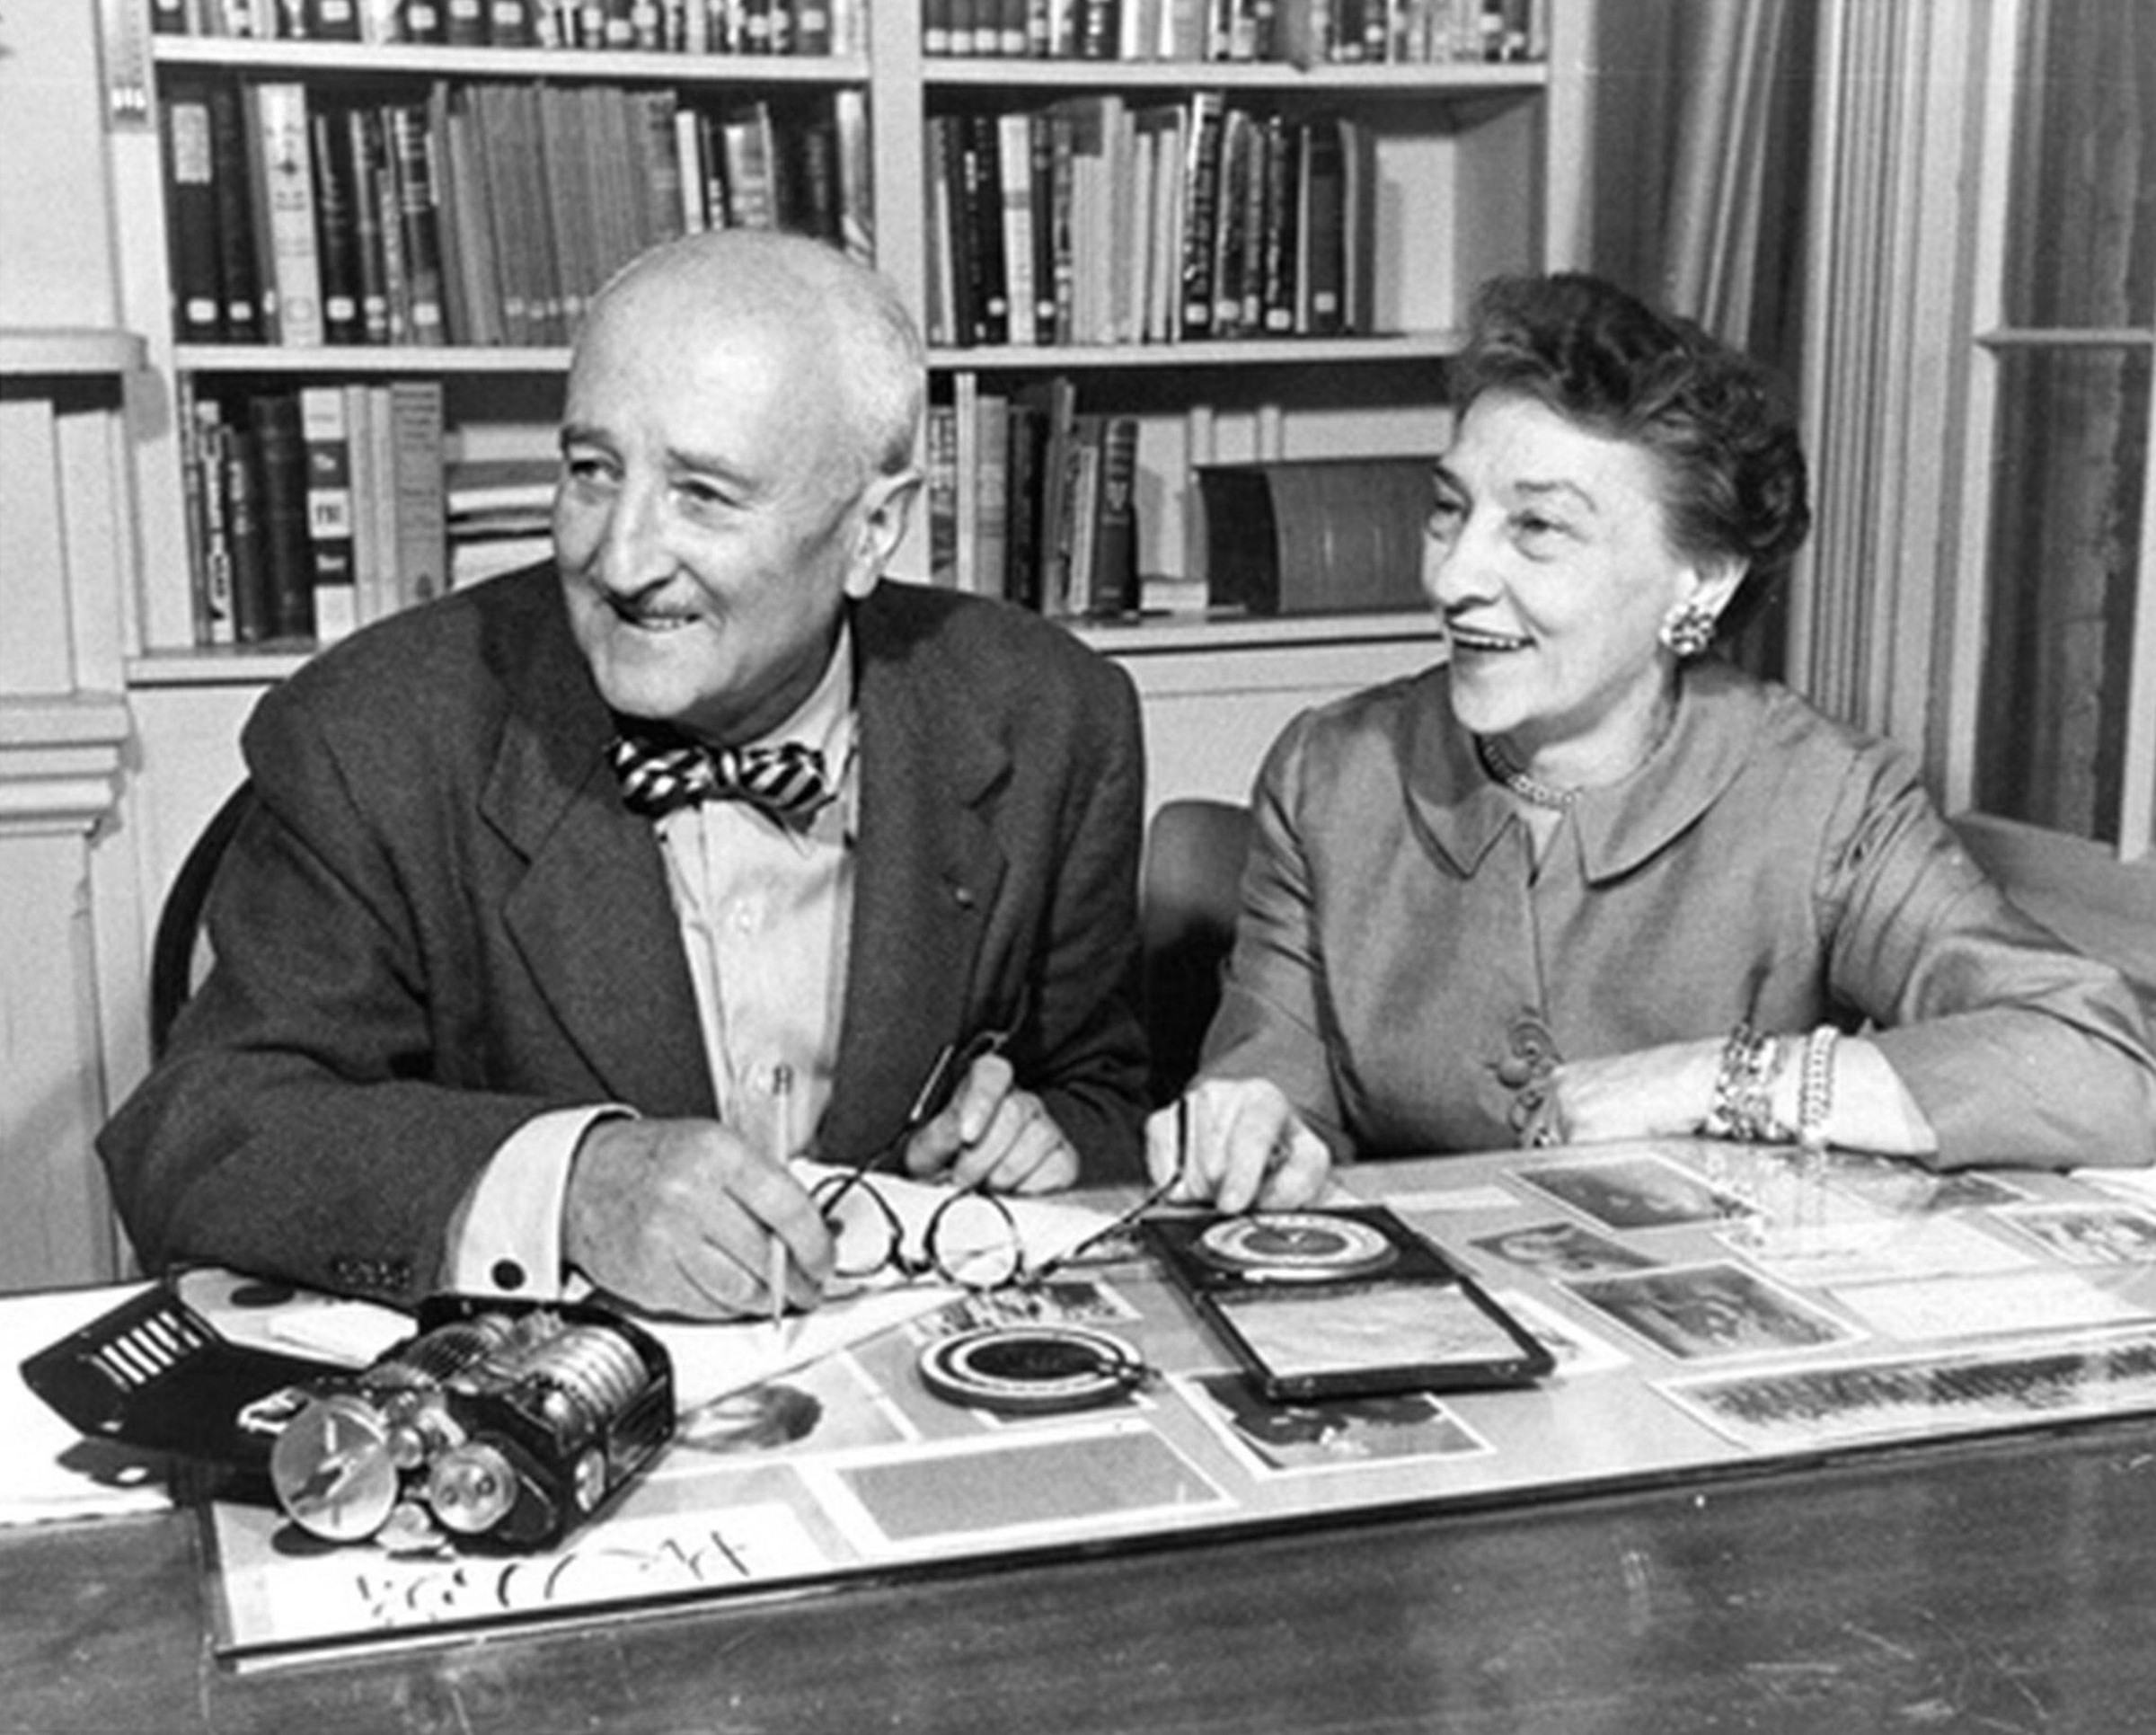 A smiling older couple stare off camera, laughing